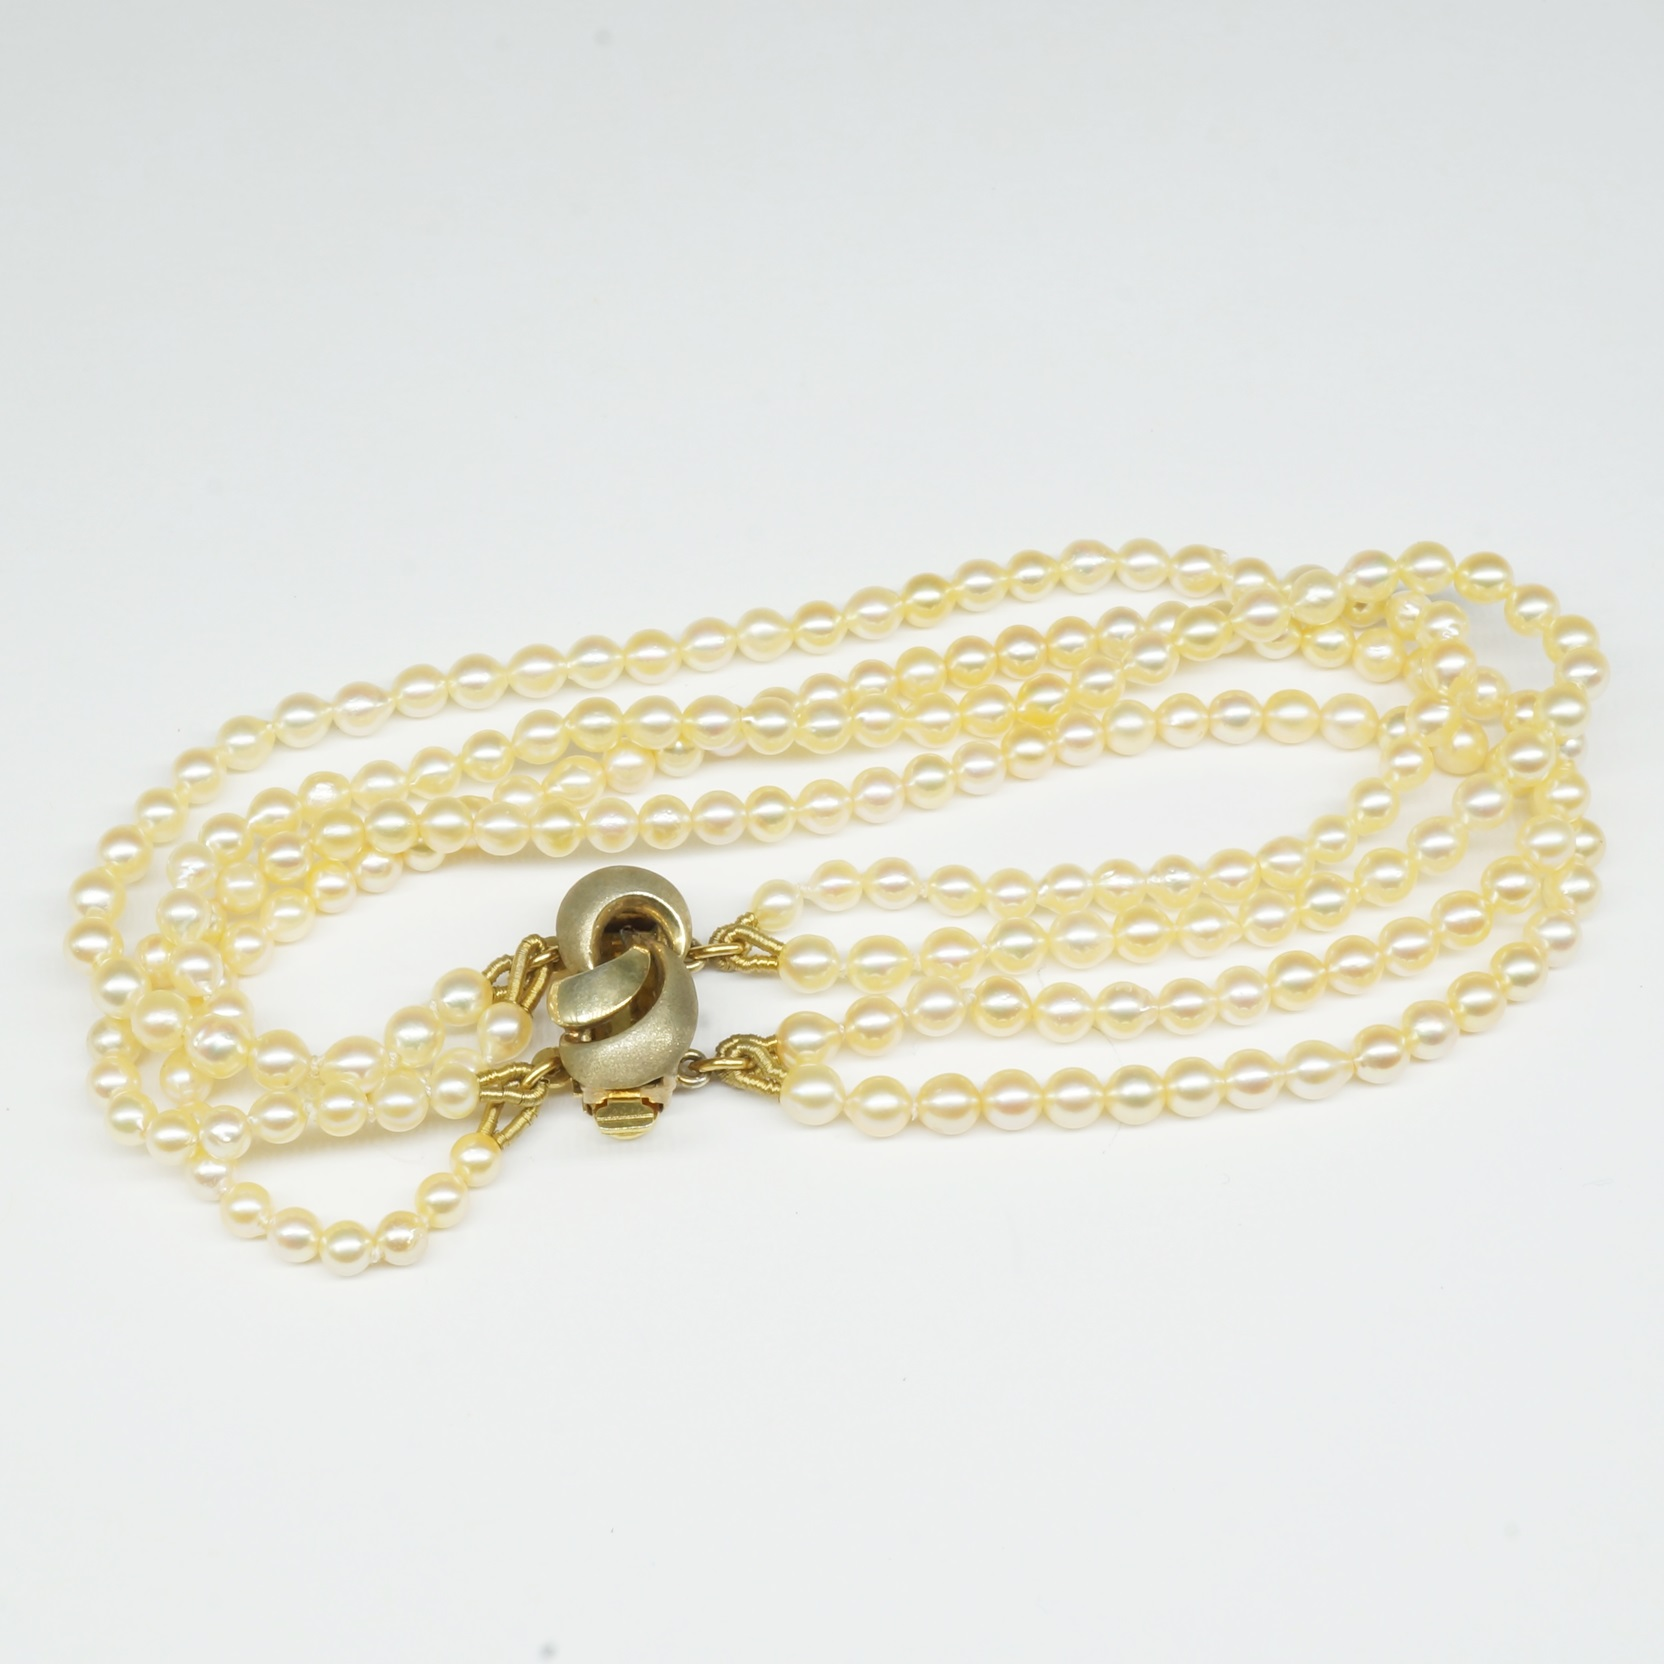 'Four Row Cultured Pearl Bracelet with Gold Plated Silver Clasp'